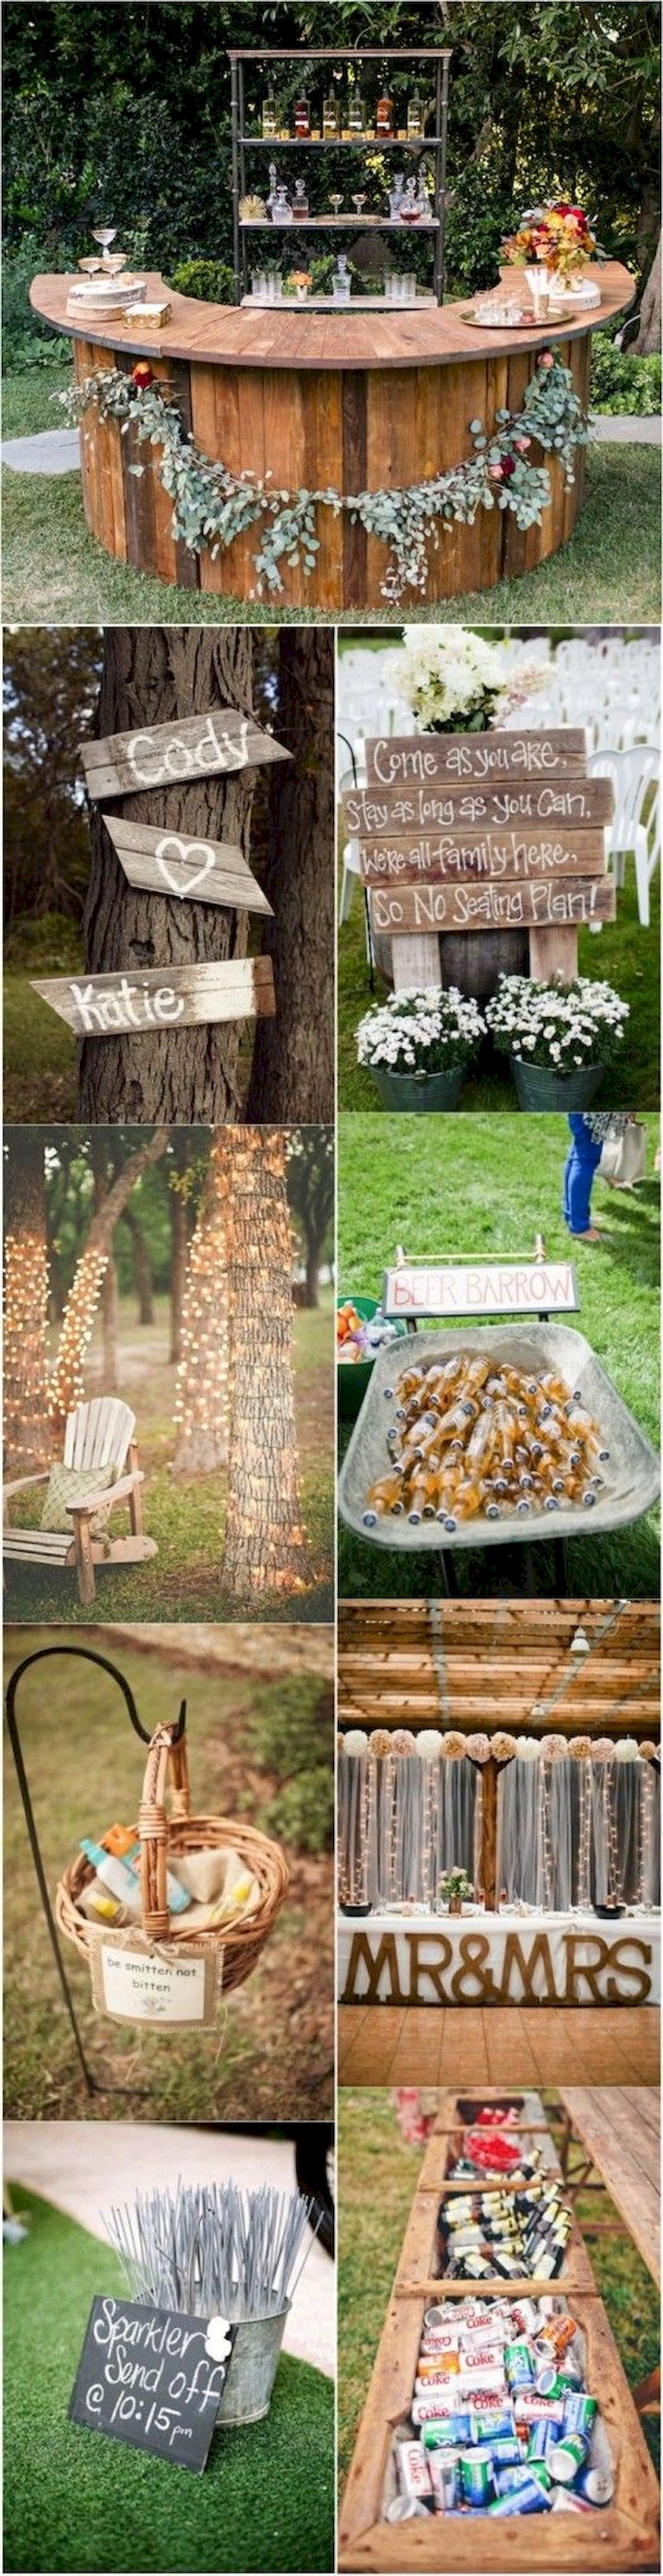 Outdoor garden wedding decoration ideas   Elegant Outdoor Wedding Decor Ideas on A Budget  Budgeting